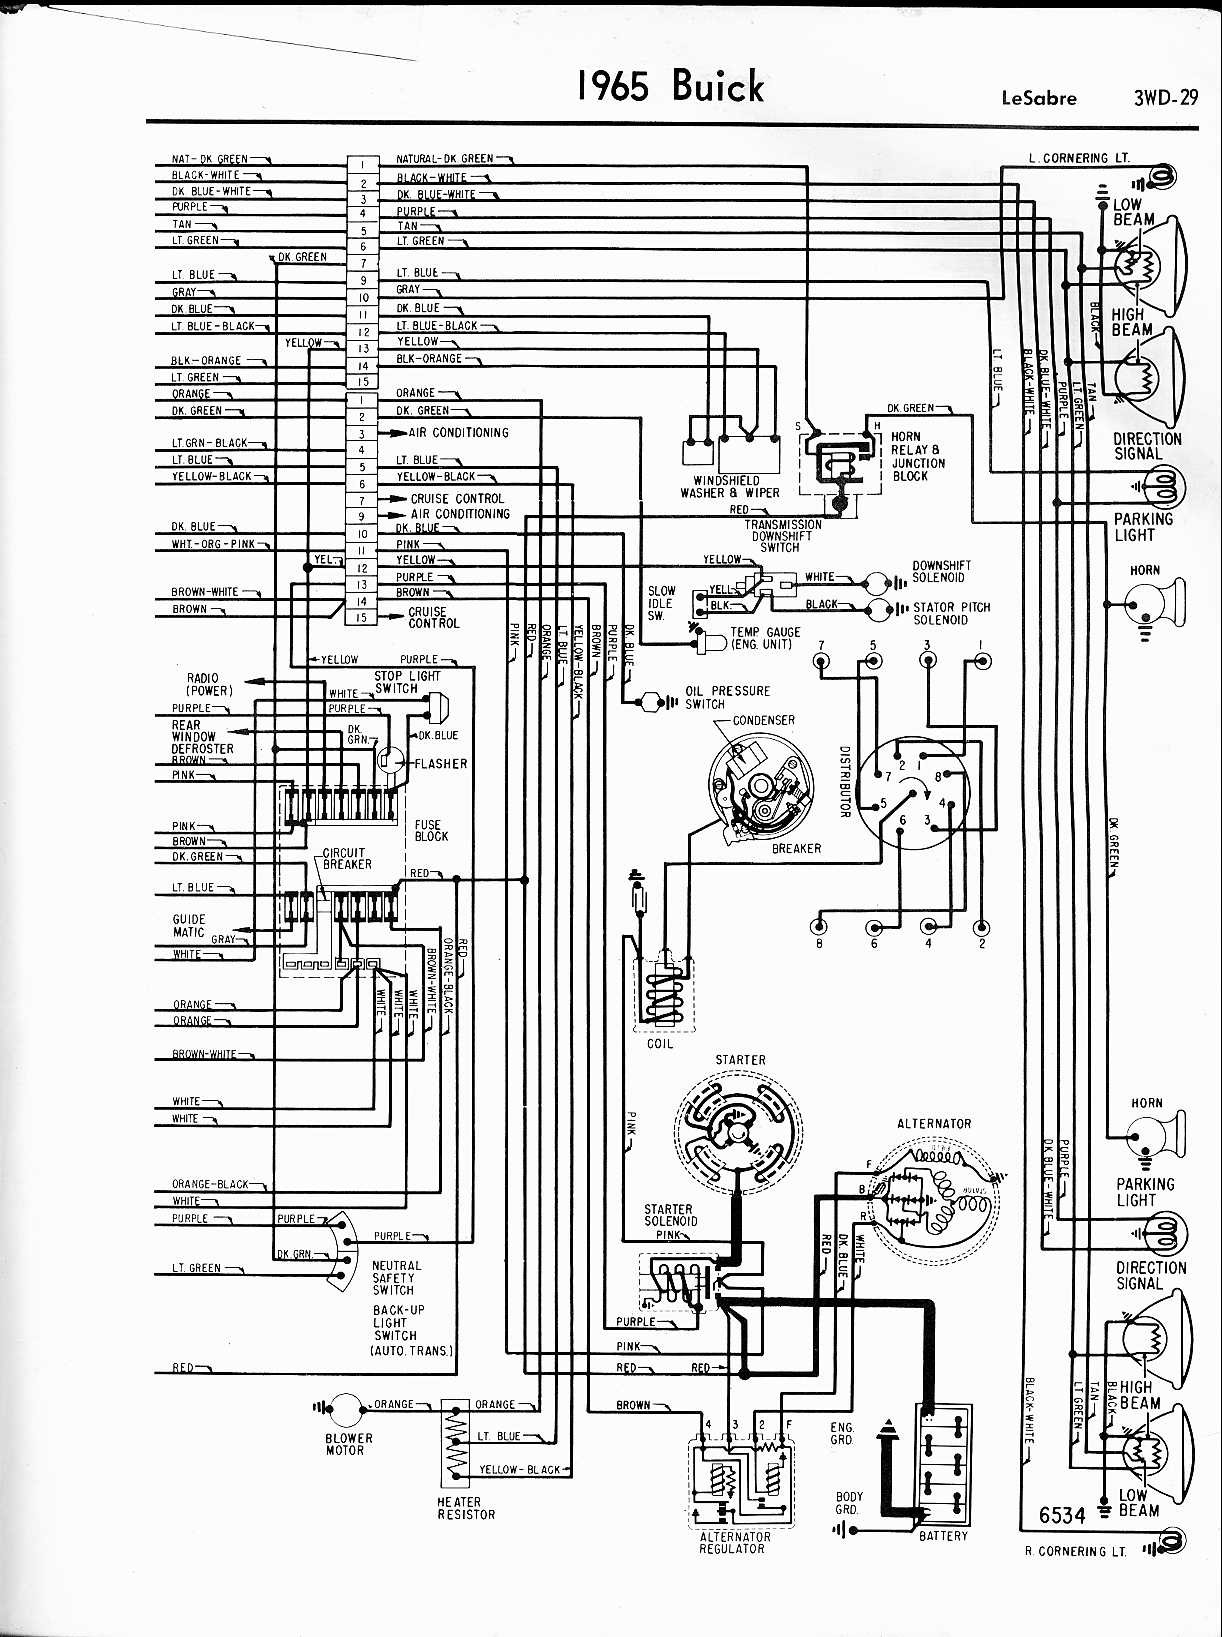 hyundai mp303 wiring diagram auto electrical wiring diagram u2022 rh 6weeks co uk